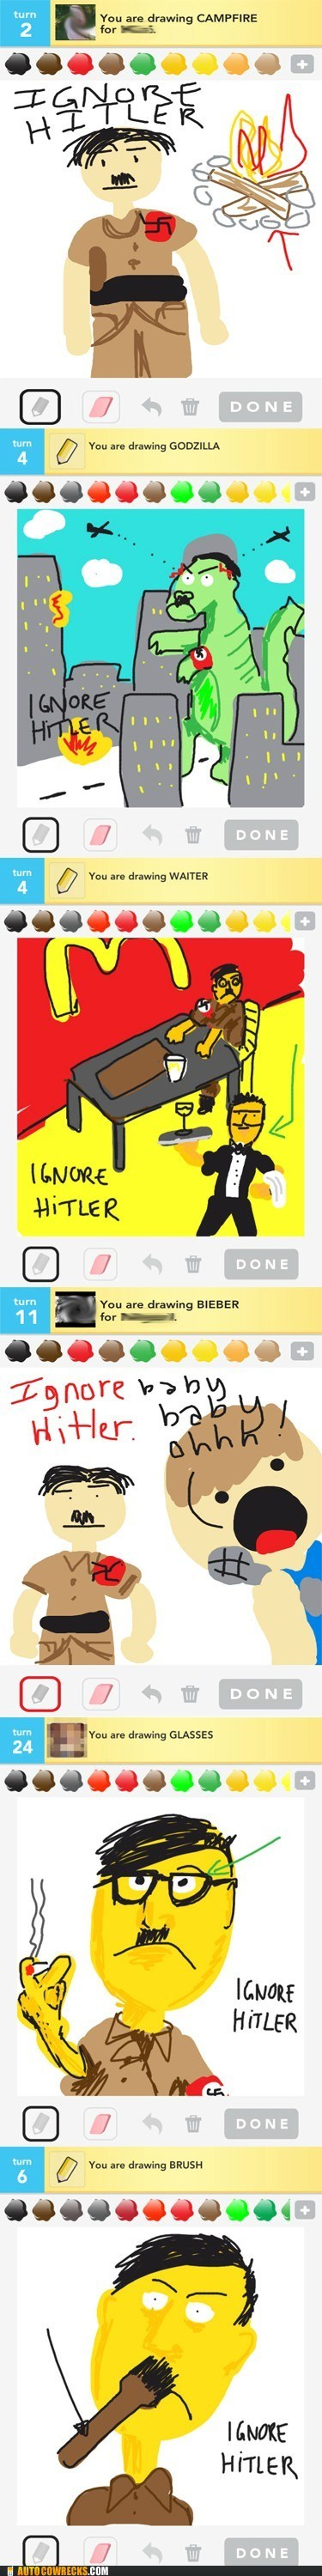 AutocoWrecks draw something german fascist dictators ignore hitler